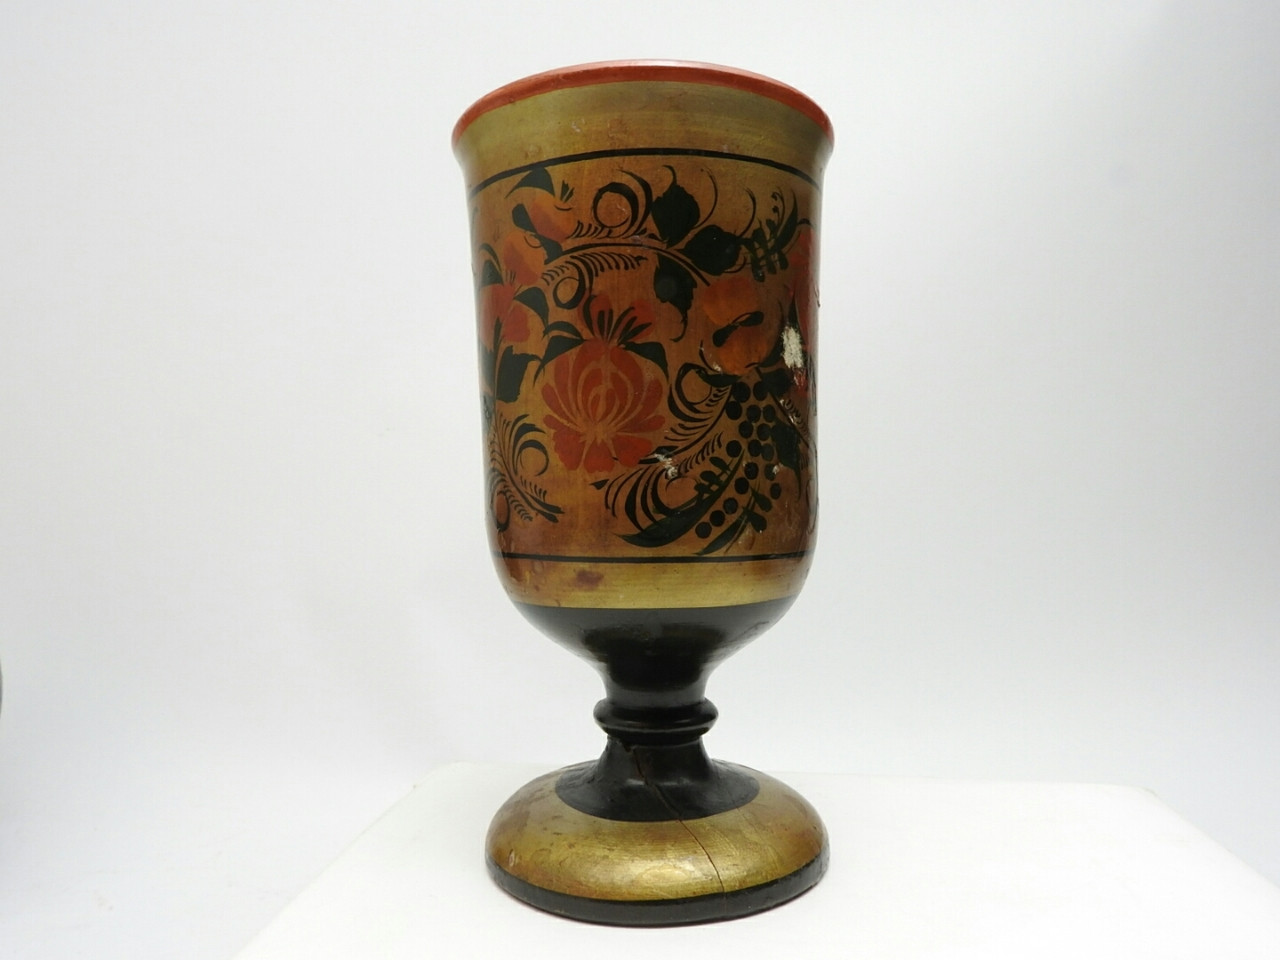 Vintage Khokhloma footed cup